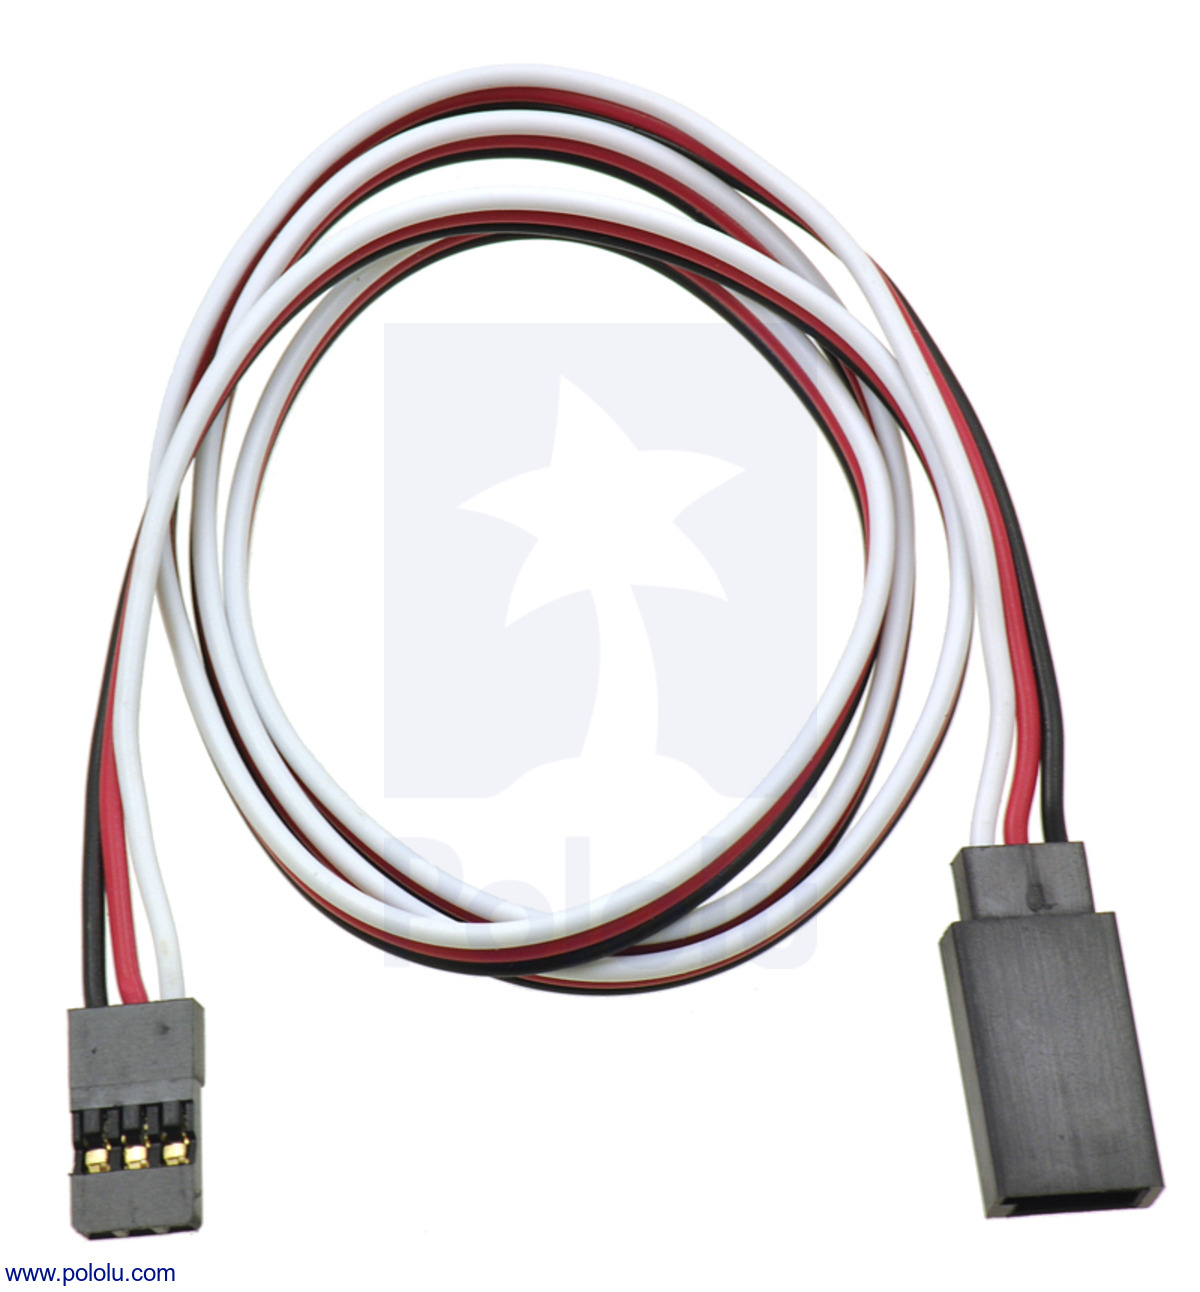 small resolution of servo extension cable 24 male female